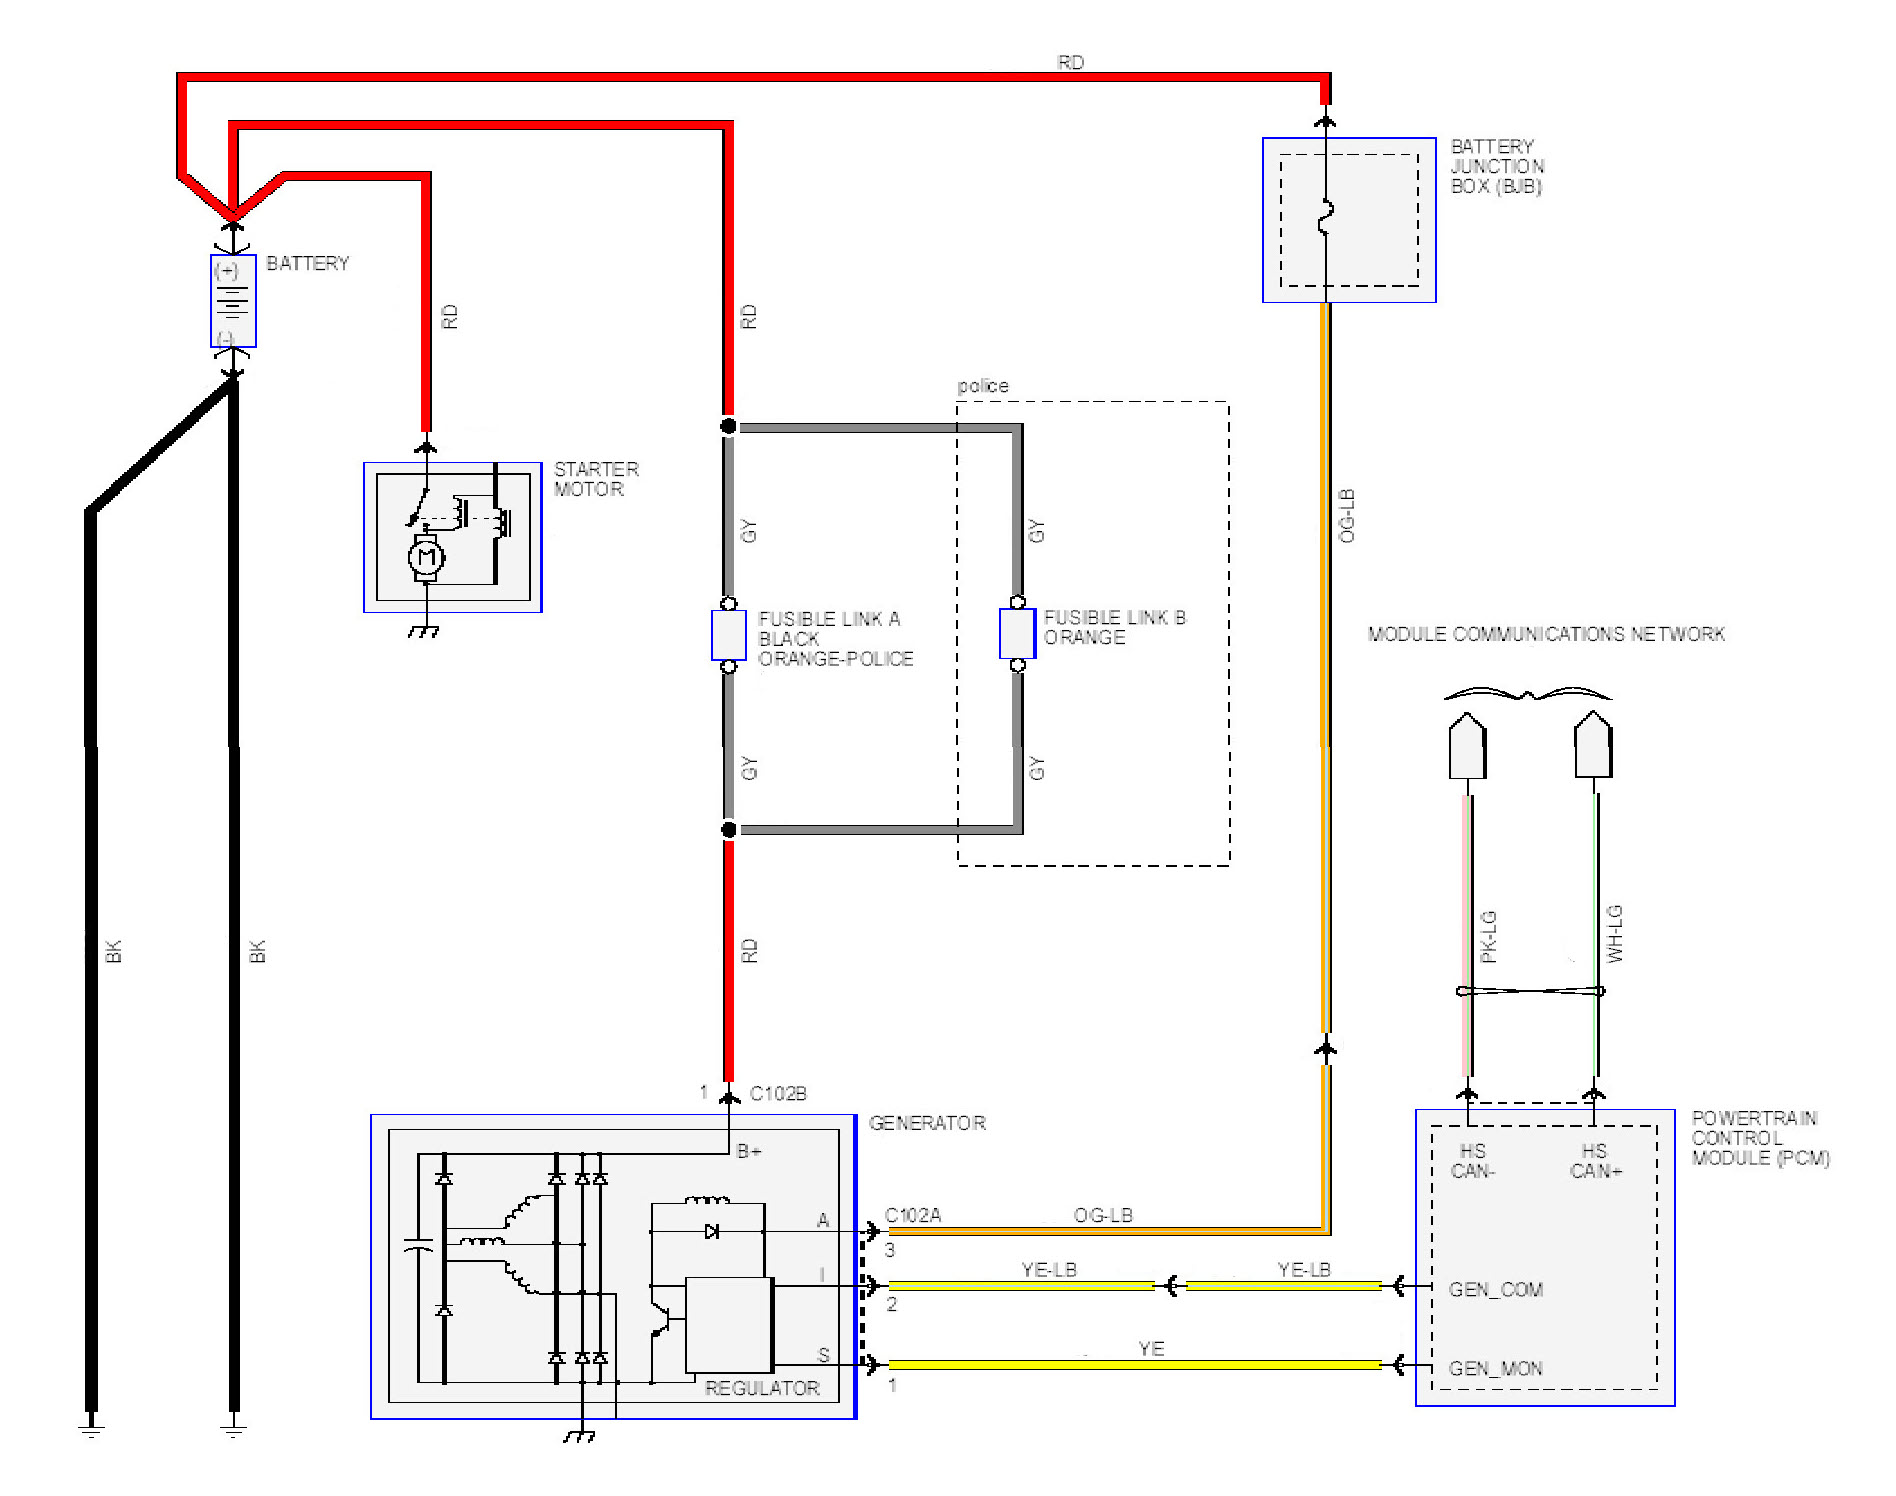 10crownviccharge ford crown victoria alternator wiring diagrams 1999 F150 Radio Wiring Diagram at bakdesigns.co